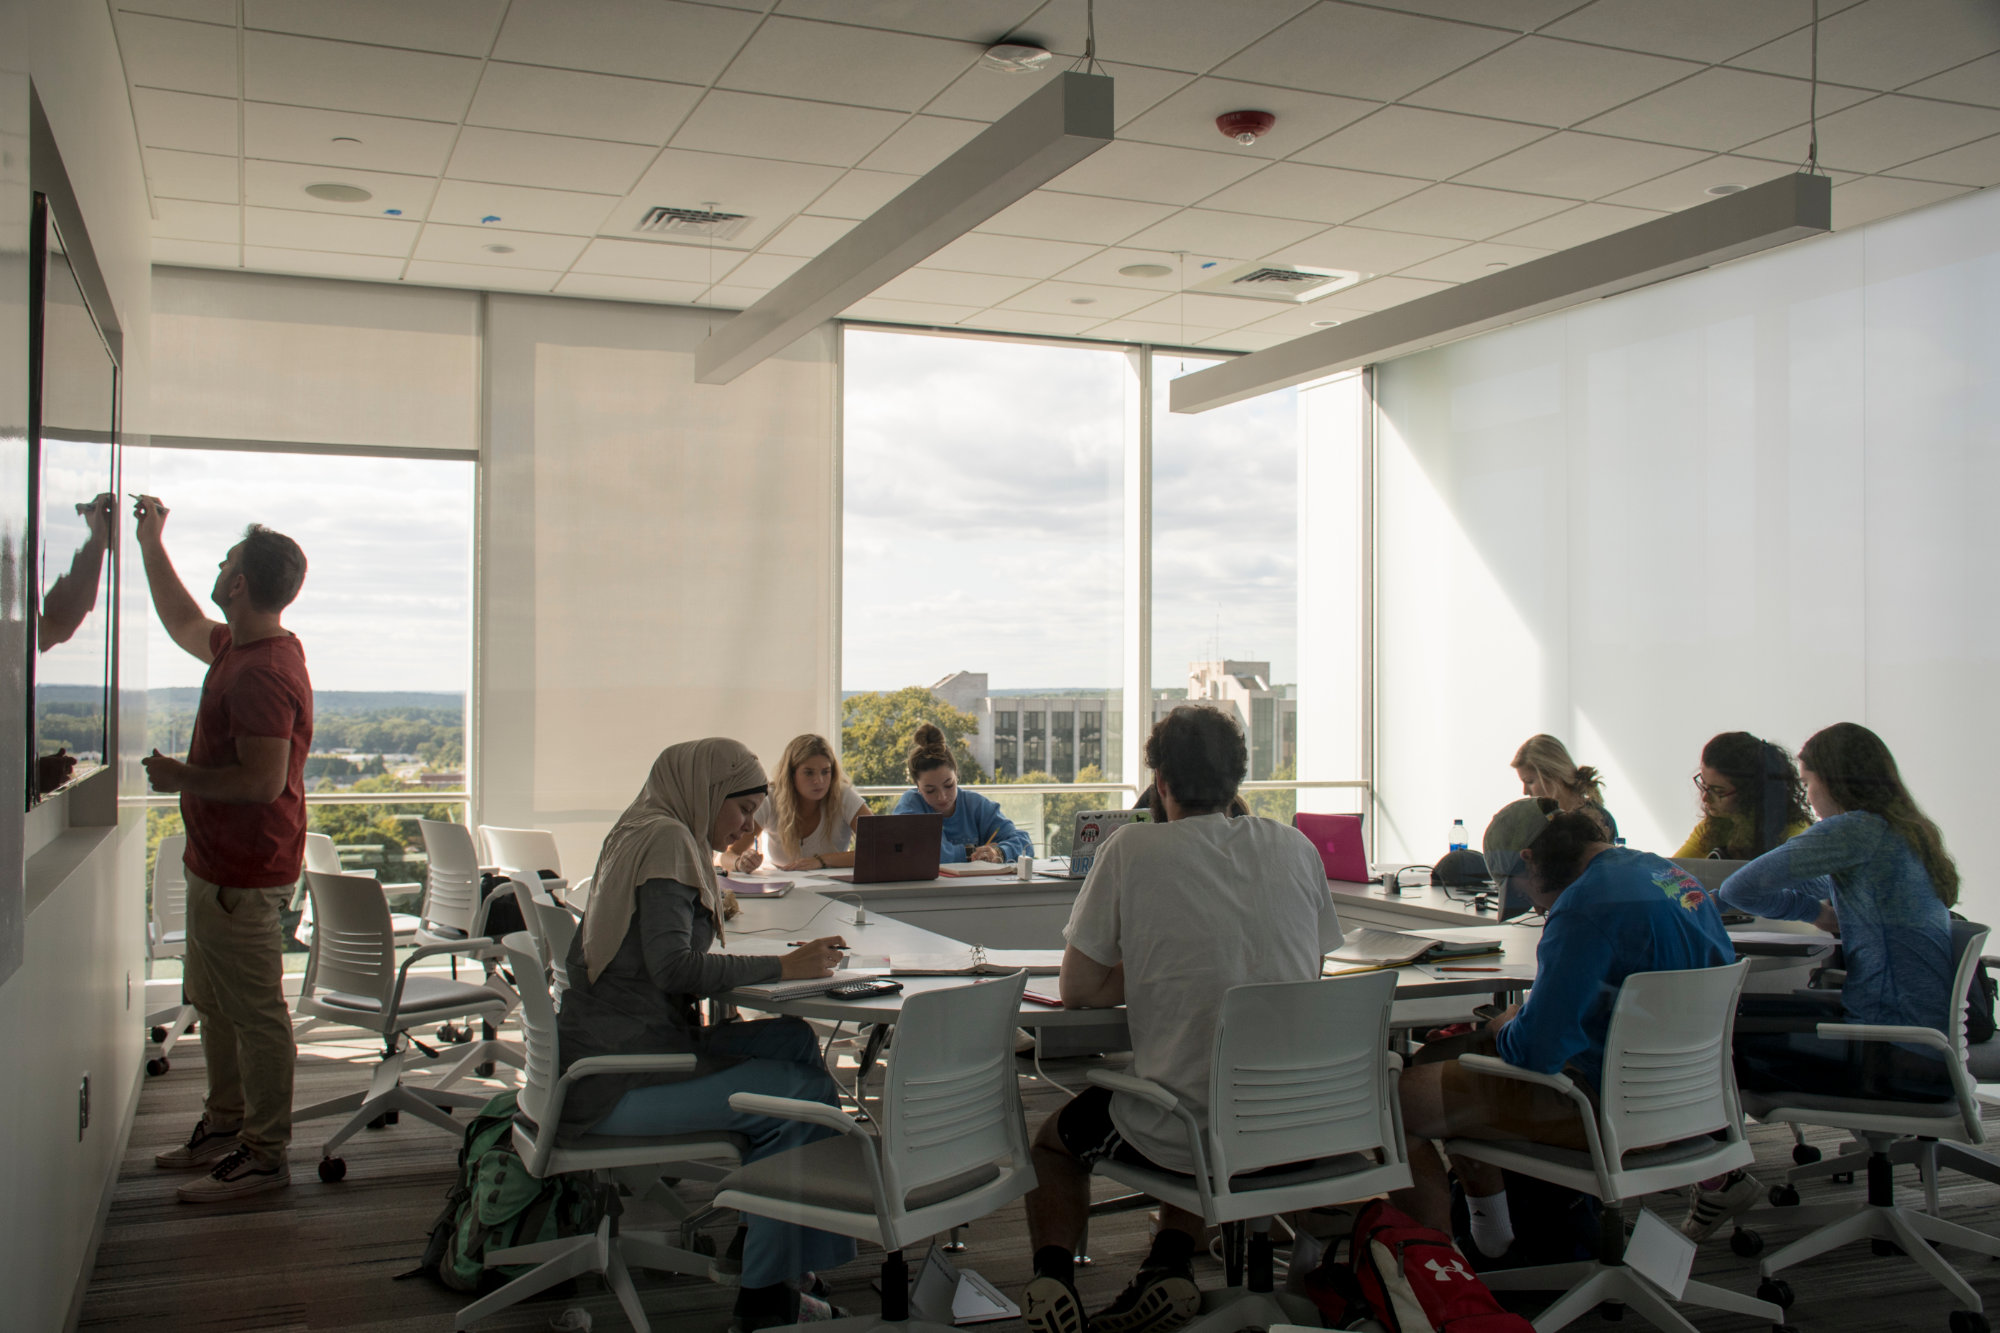 Students and their professor gathered for class in the new engineering facility